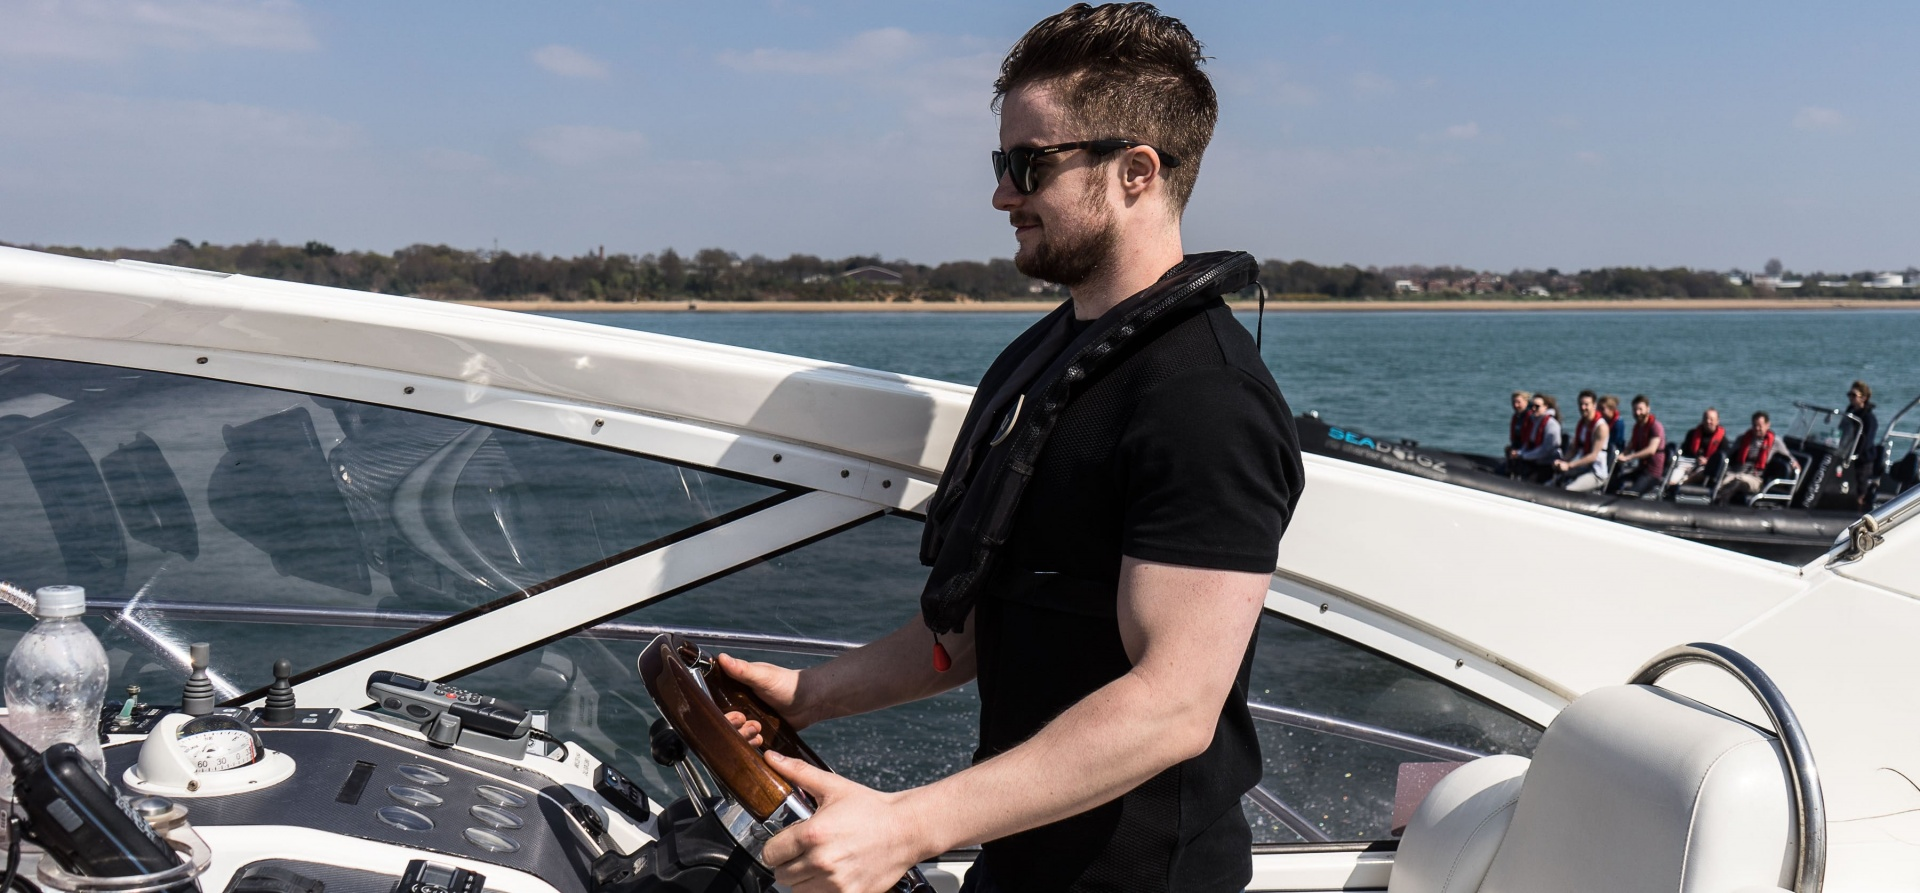 RIB And Cruiser Boating Experience Southampton-5